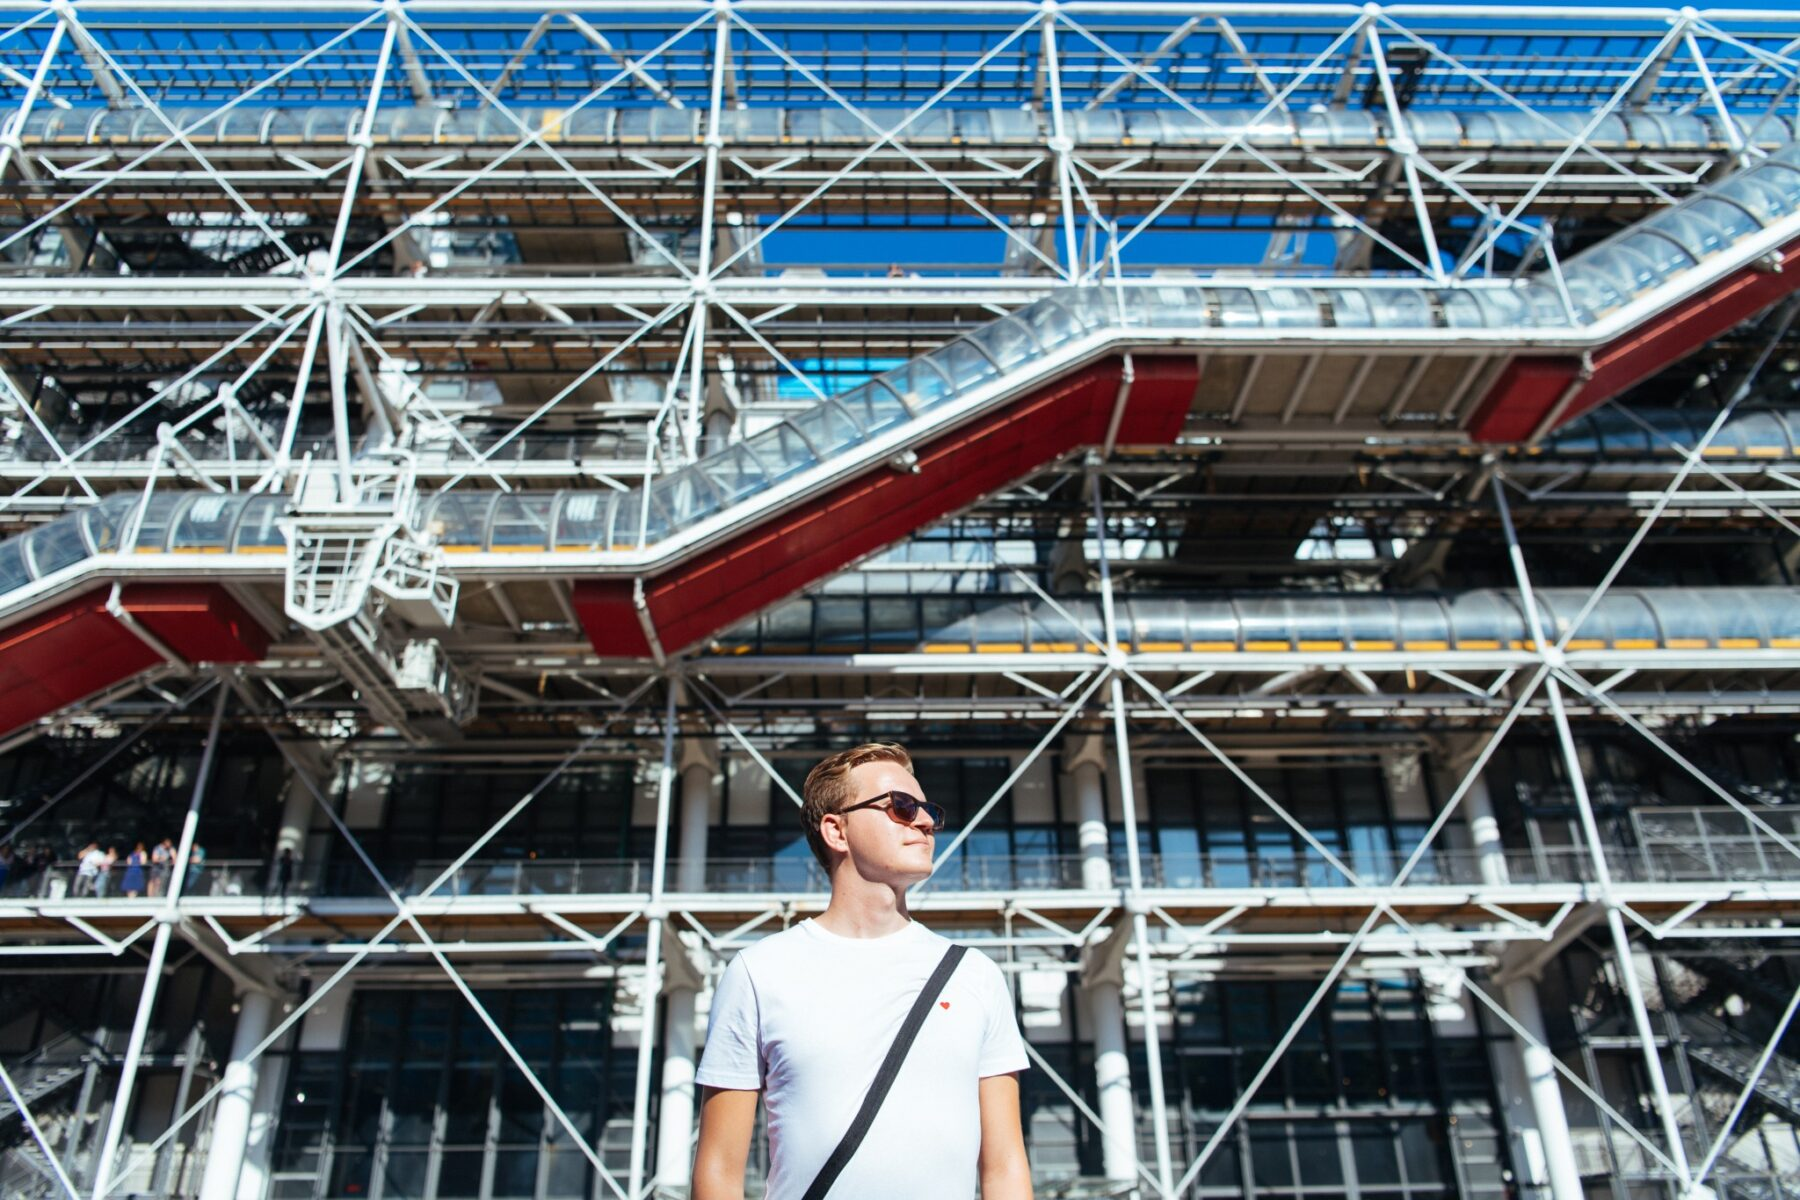 Pascal Birchler in front of Centre Pompidou